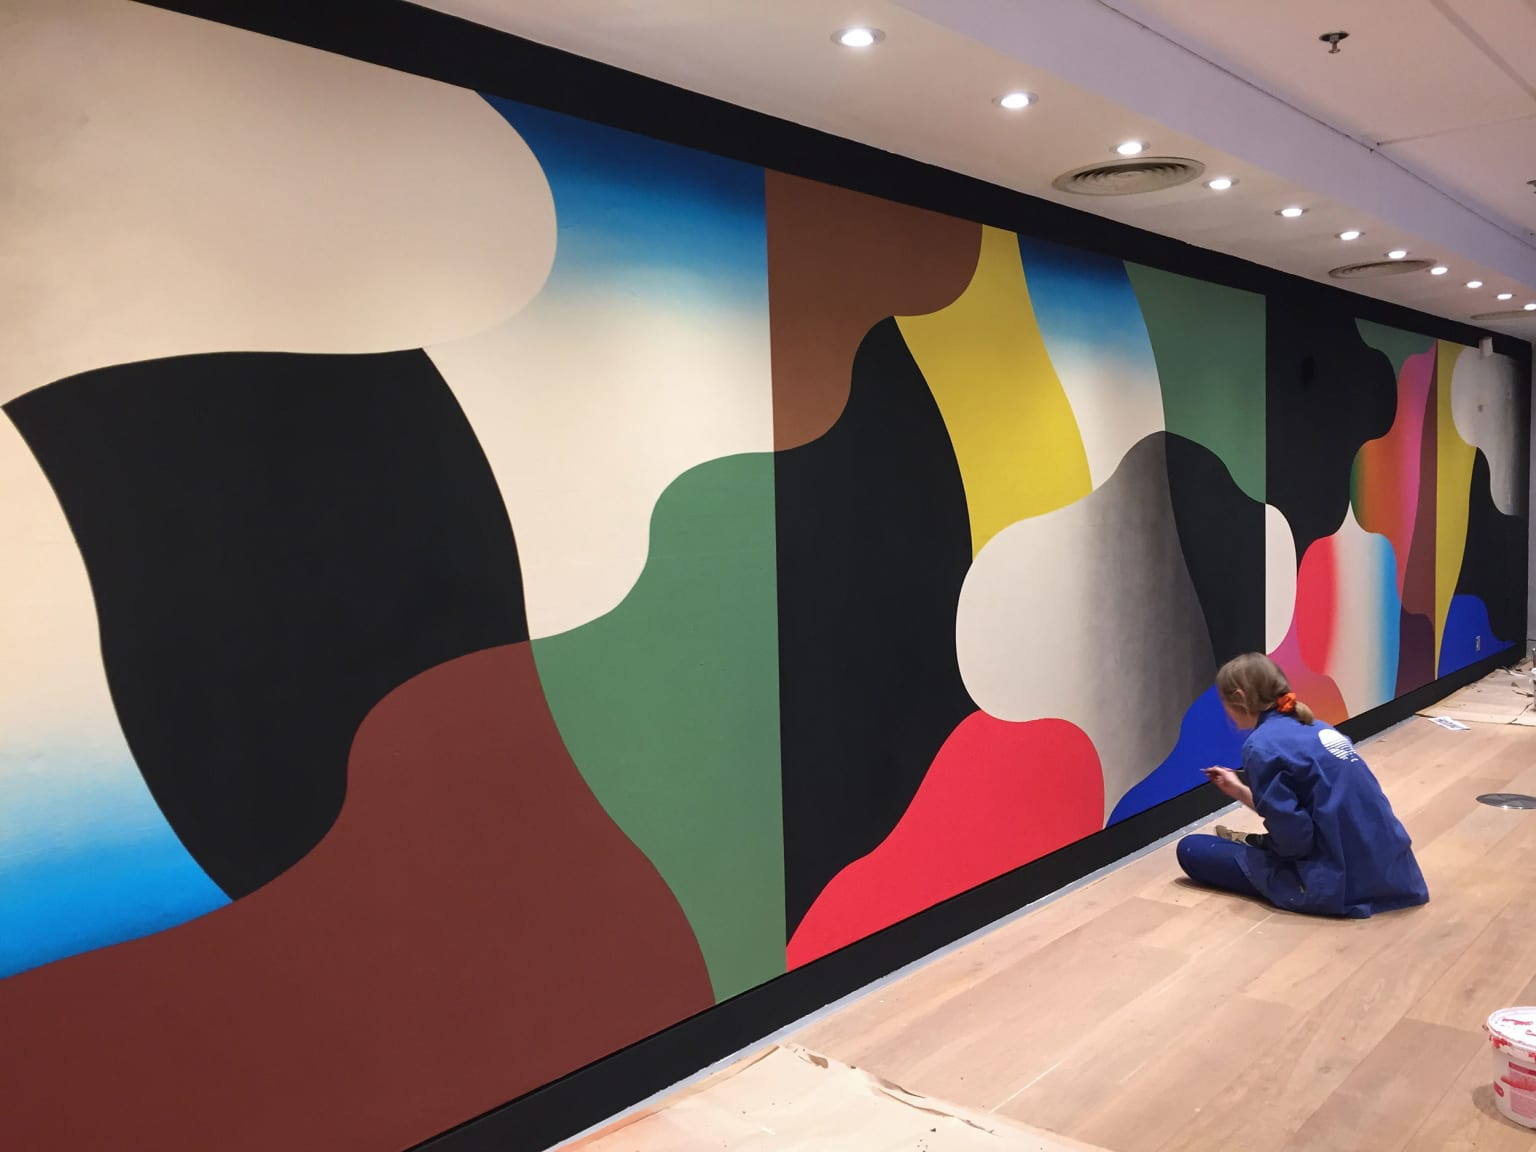 Mural - The Conran Shop, Marylebone